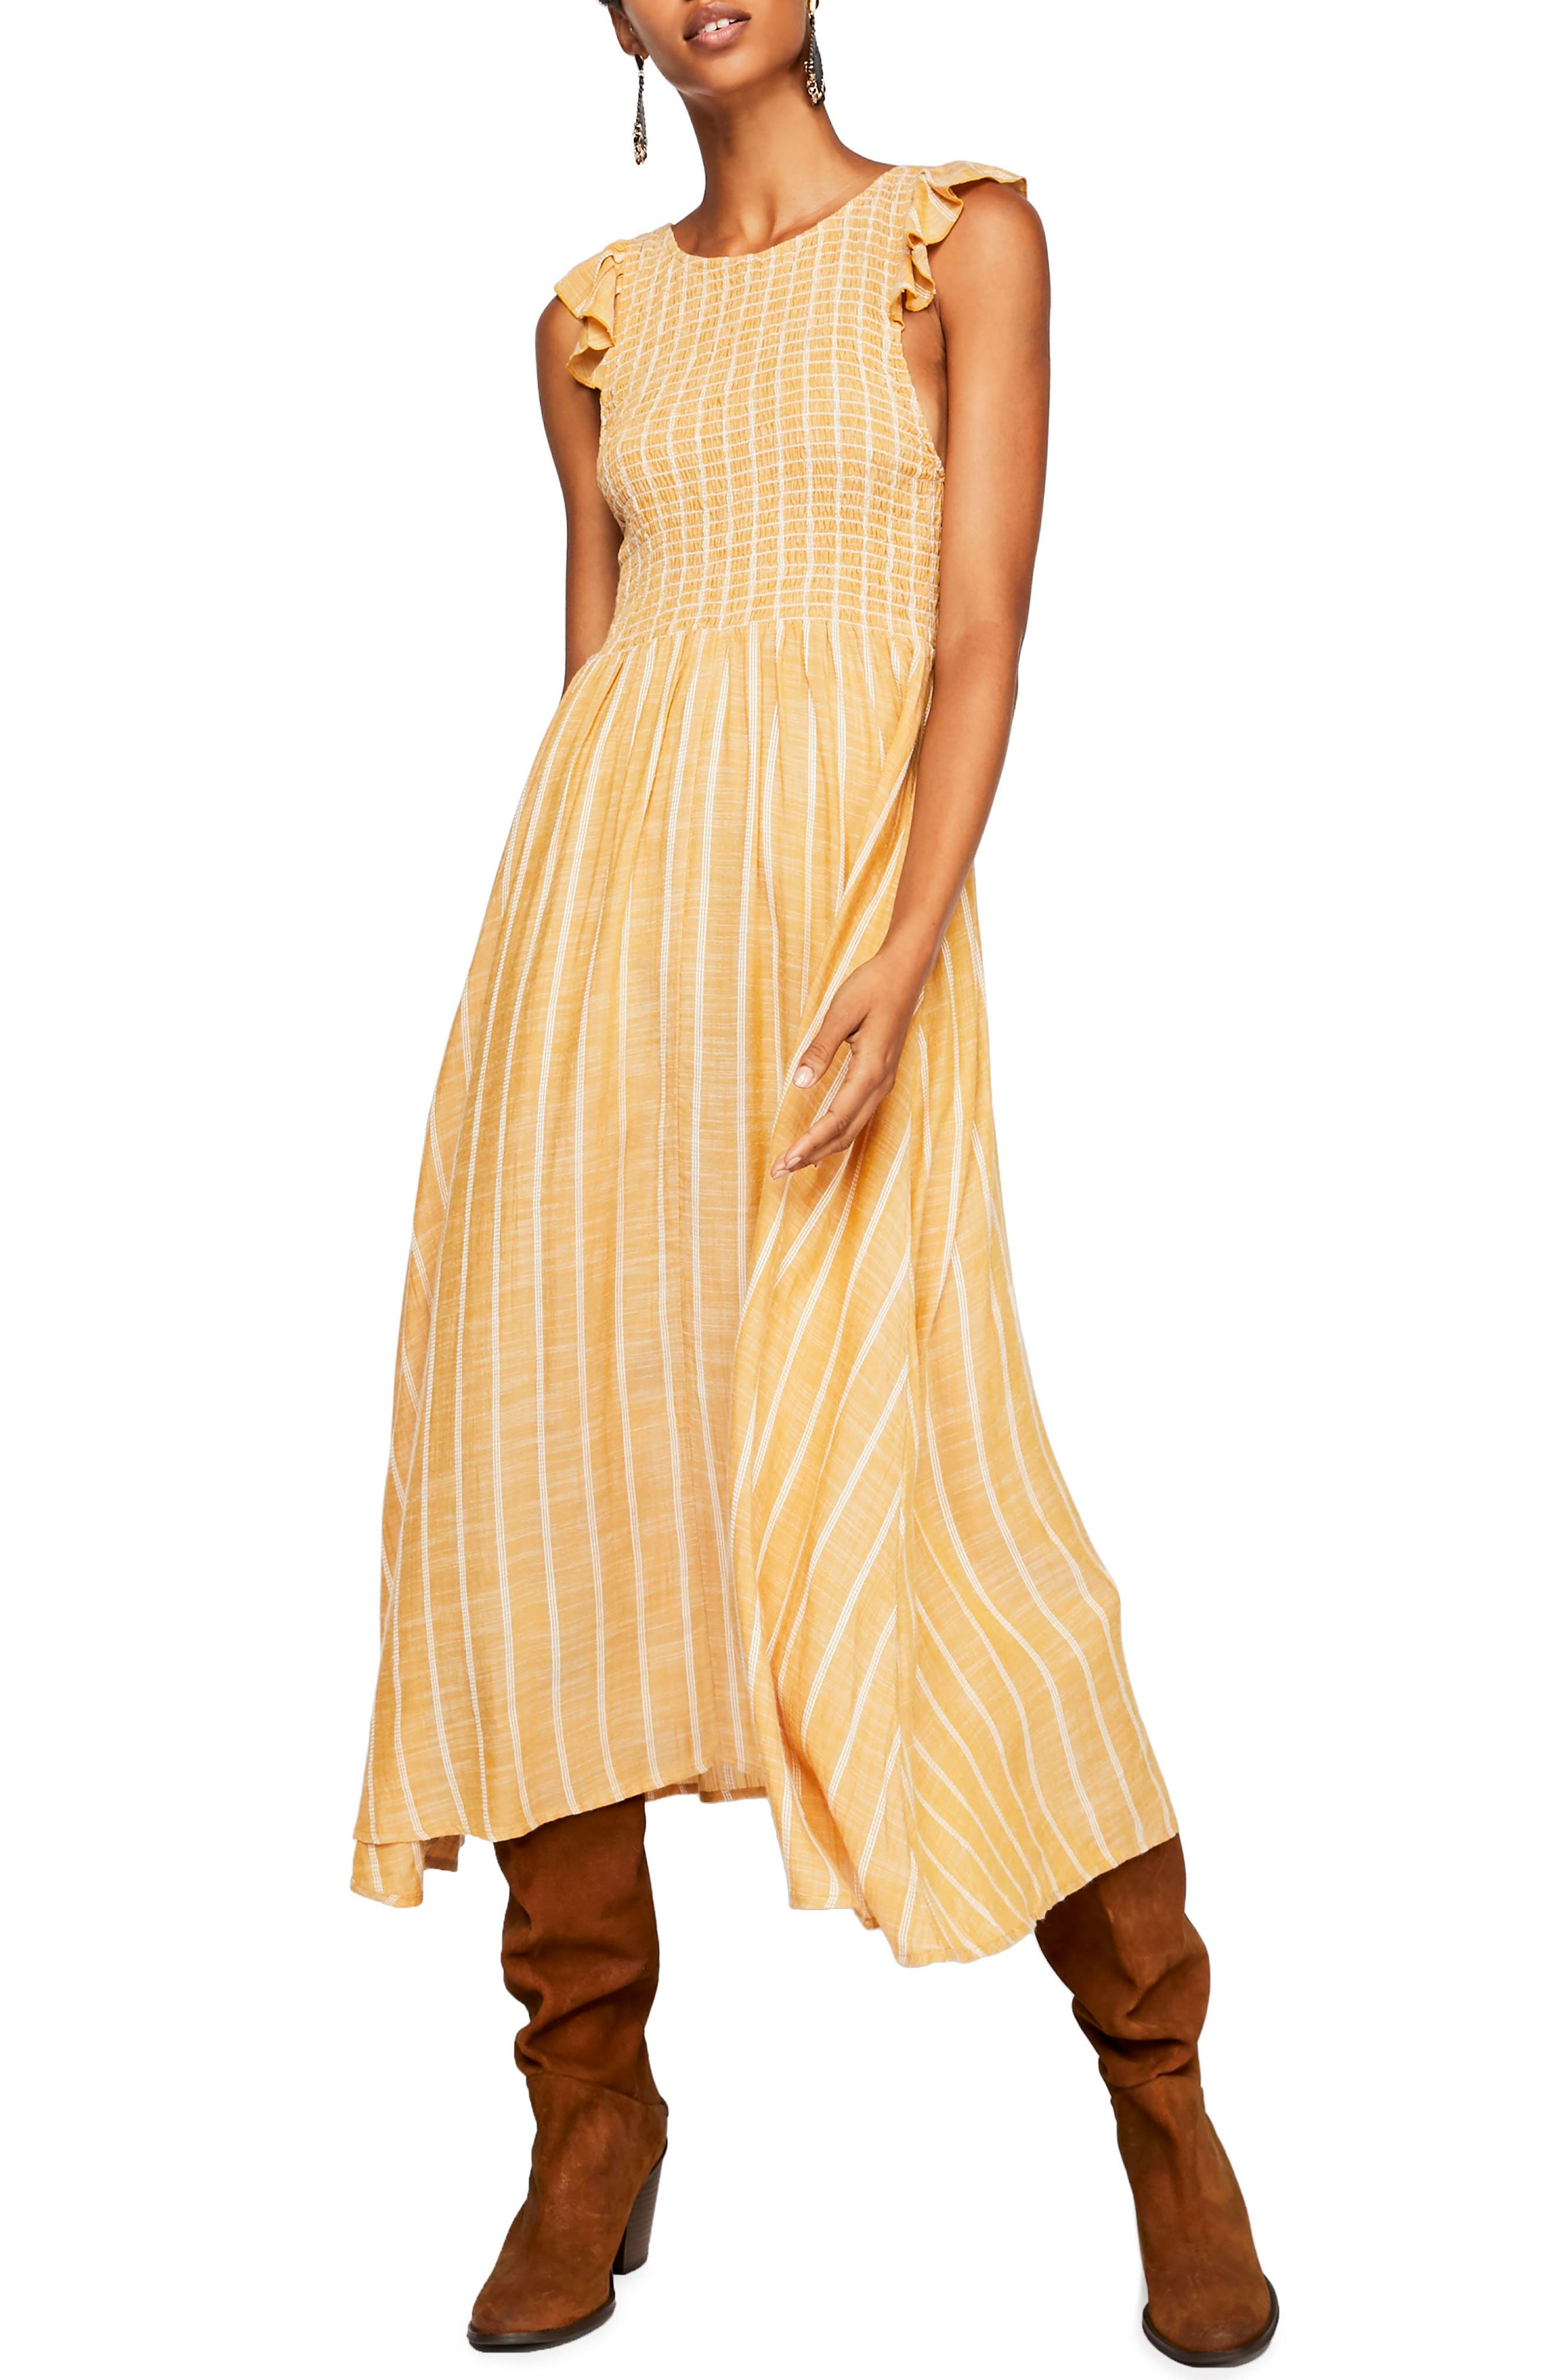 FREE PEOPLE Butterflies Chambray Midi Dress, Main, color, GOLD